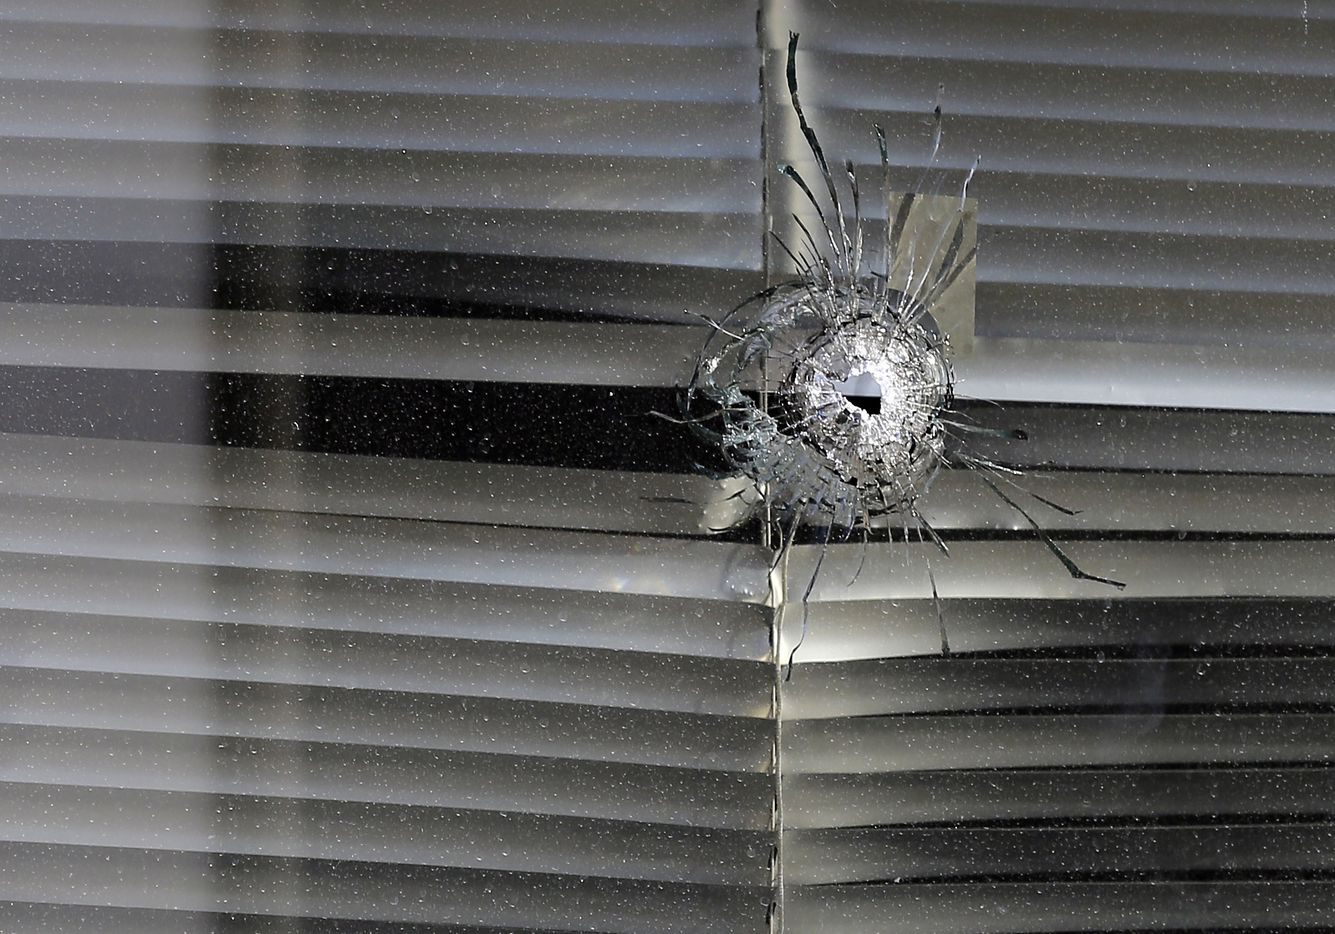 A bullet hole was seen in a window at El Centro College on July 14, 2016.